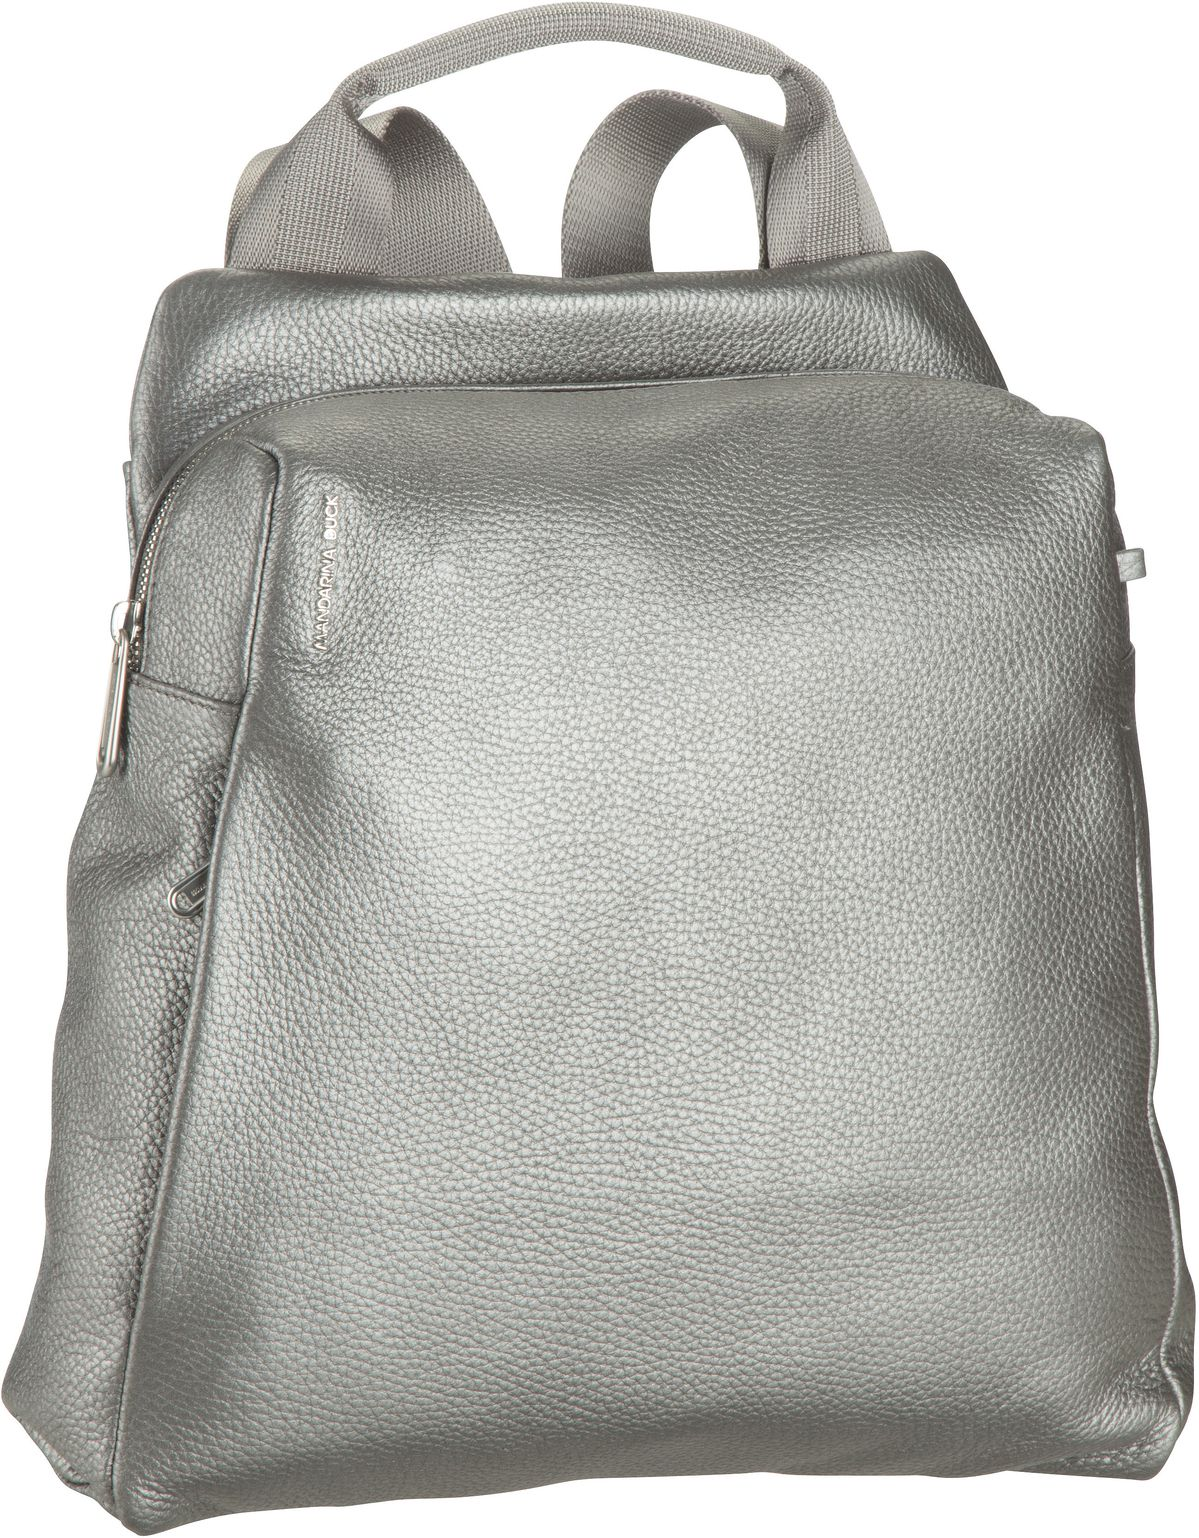 Rucksack / Daypack Mellow Leather Lux Backpack ZLT66 Lead